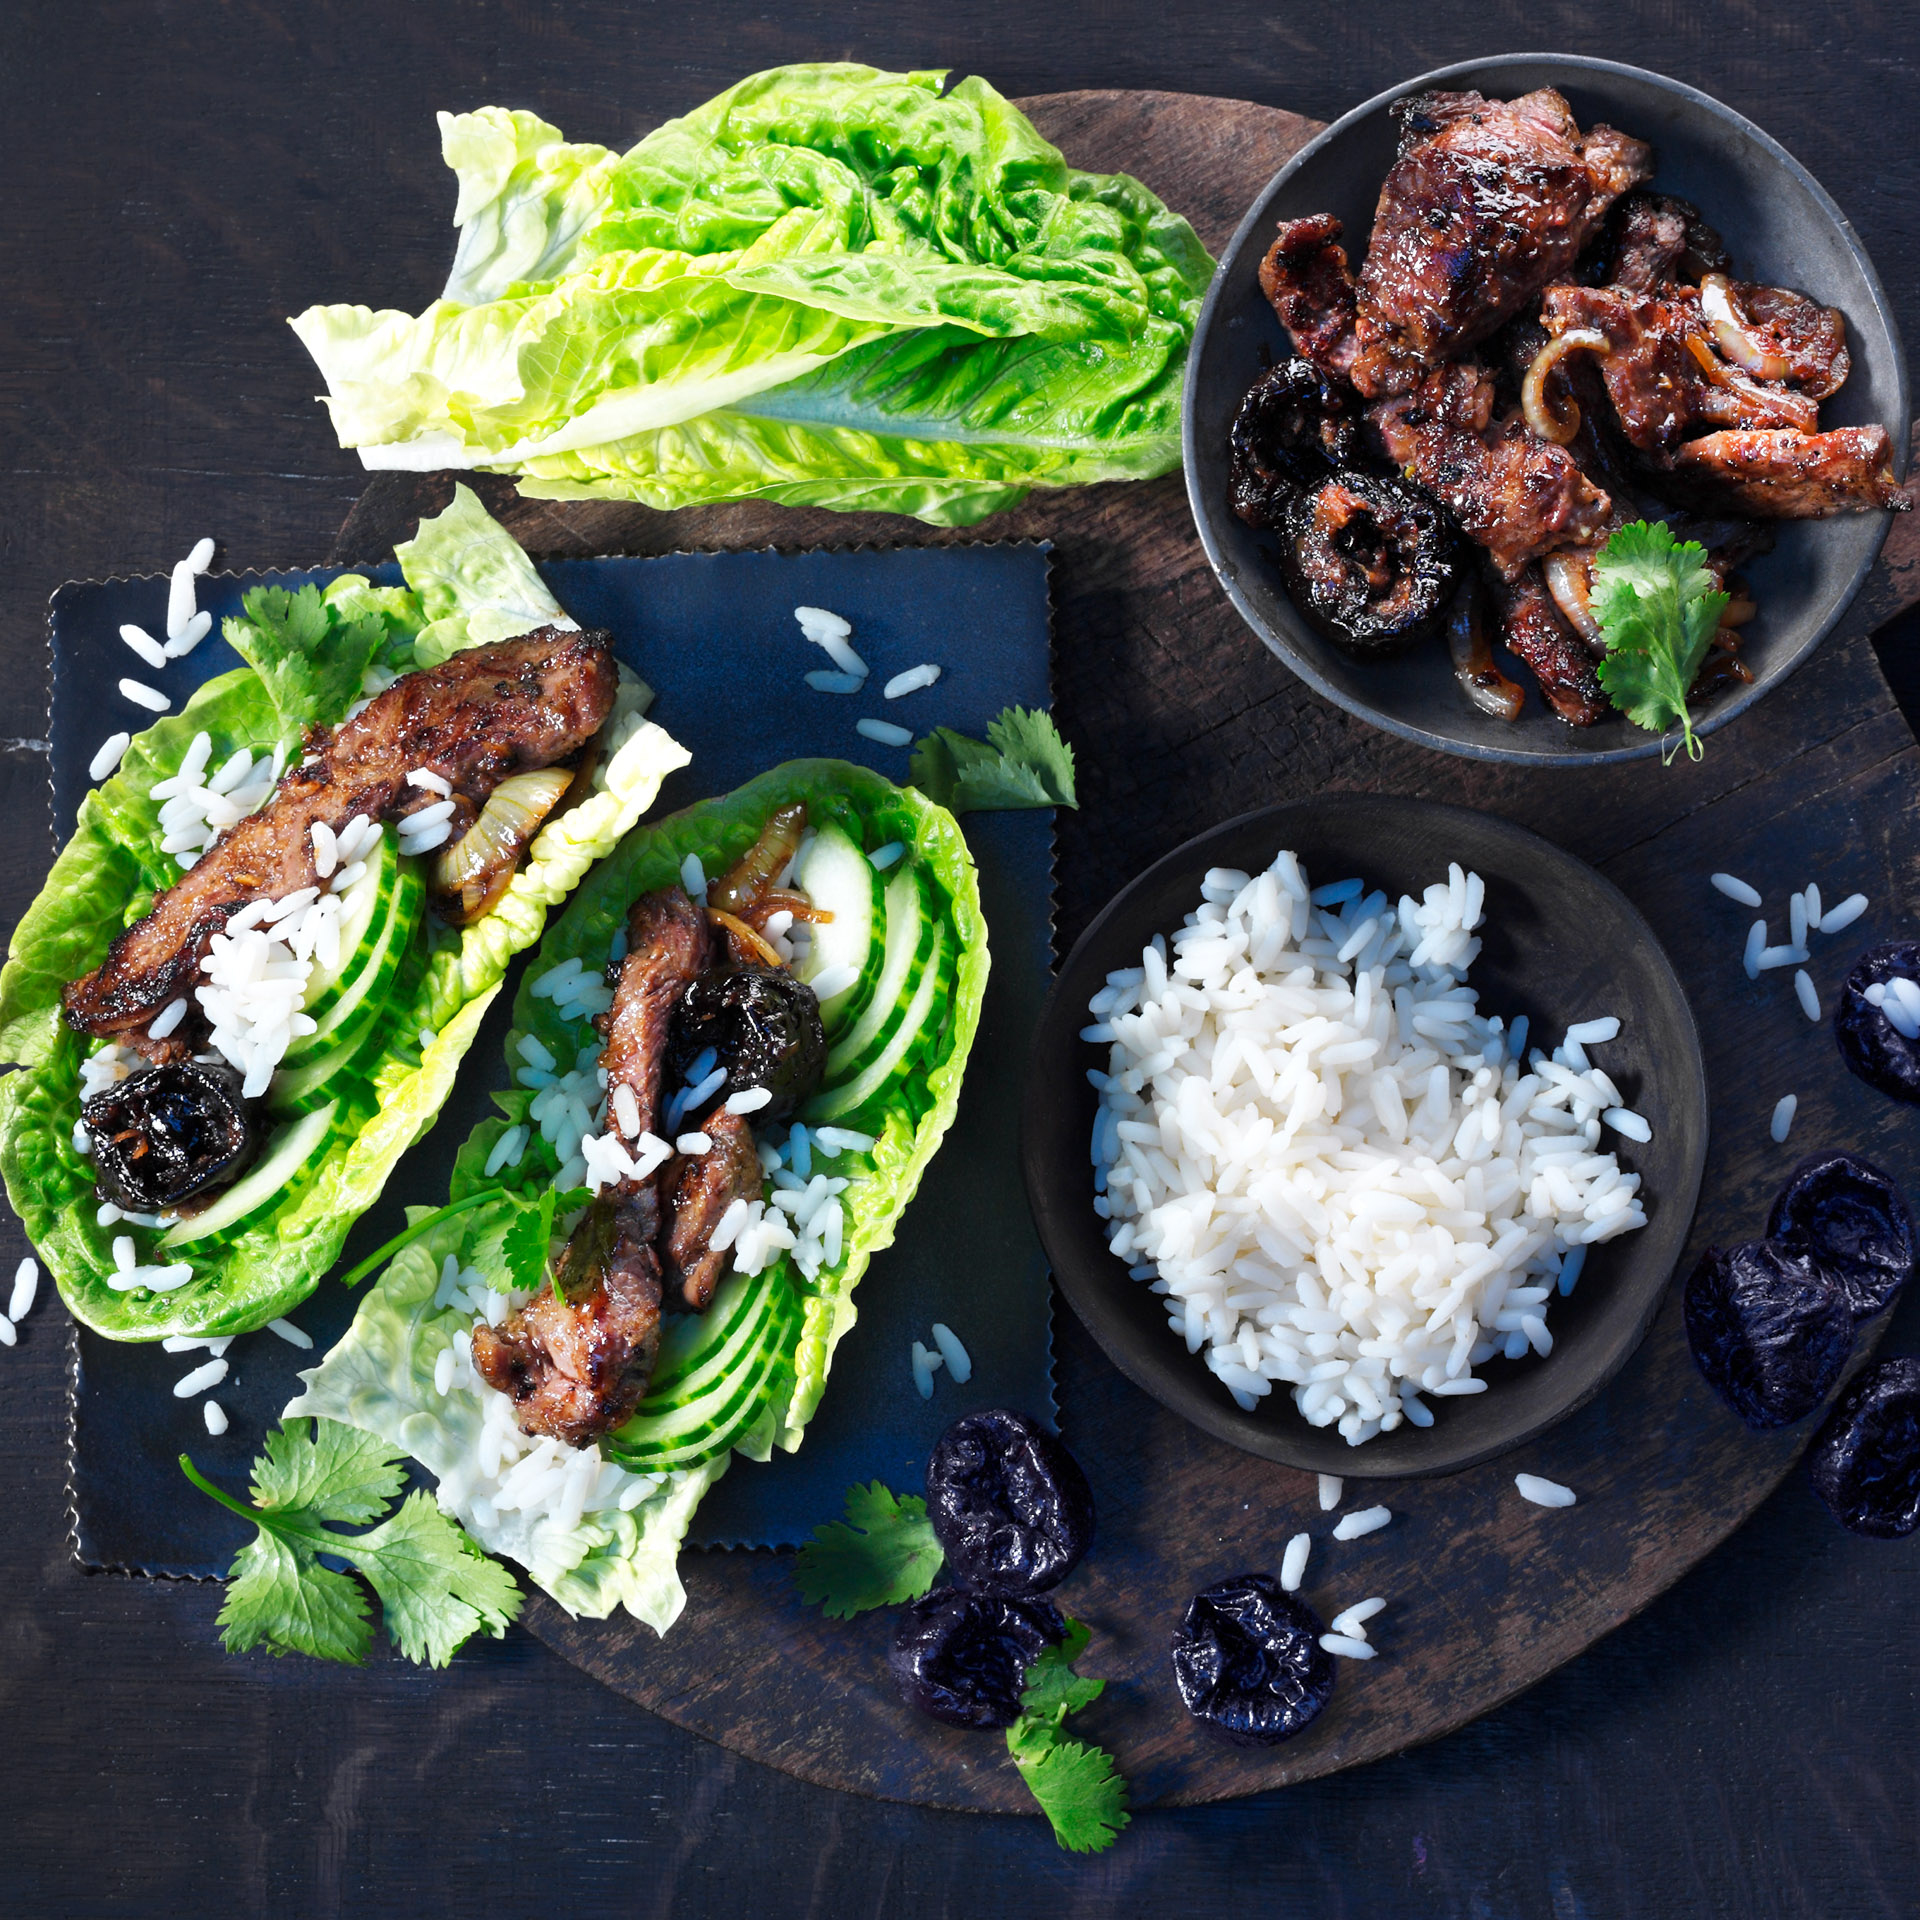 <p>Using prunes in bulgogi marinade in place of most of the sugar boosts the savory flavor of the meat.</p>